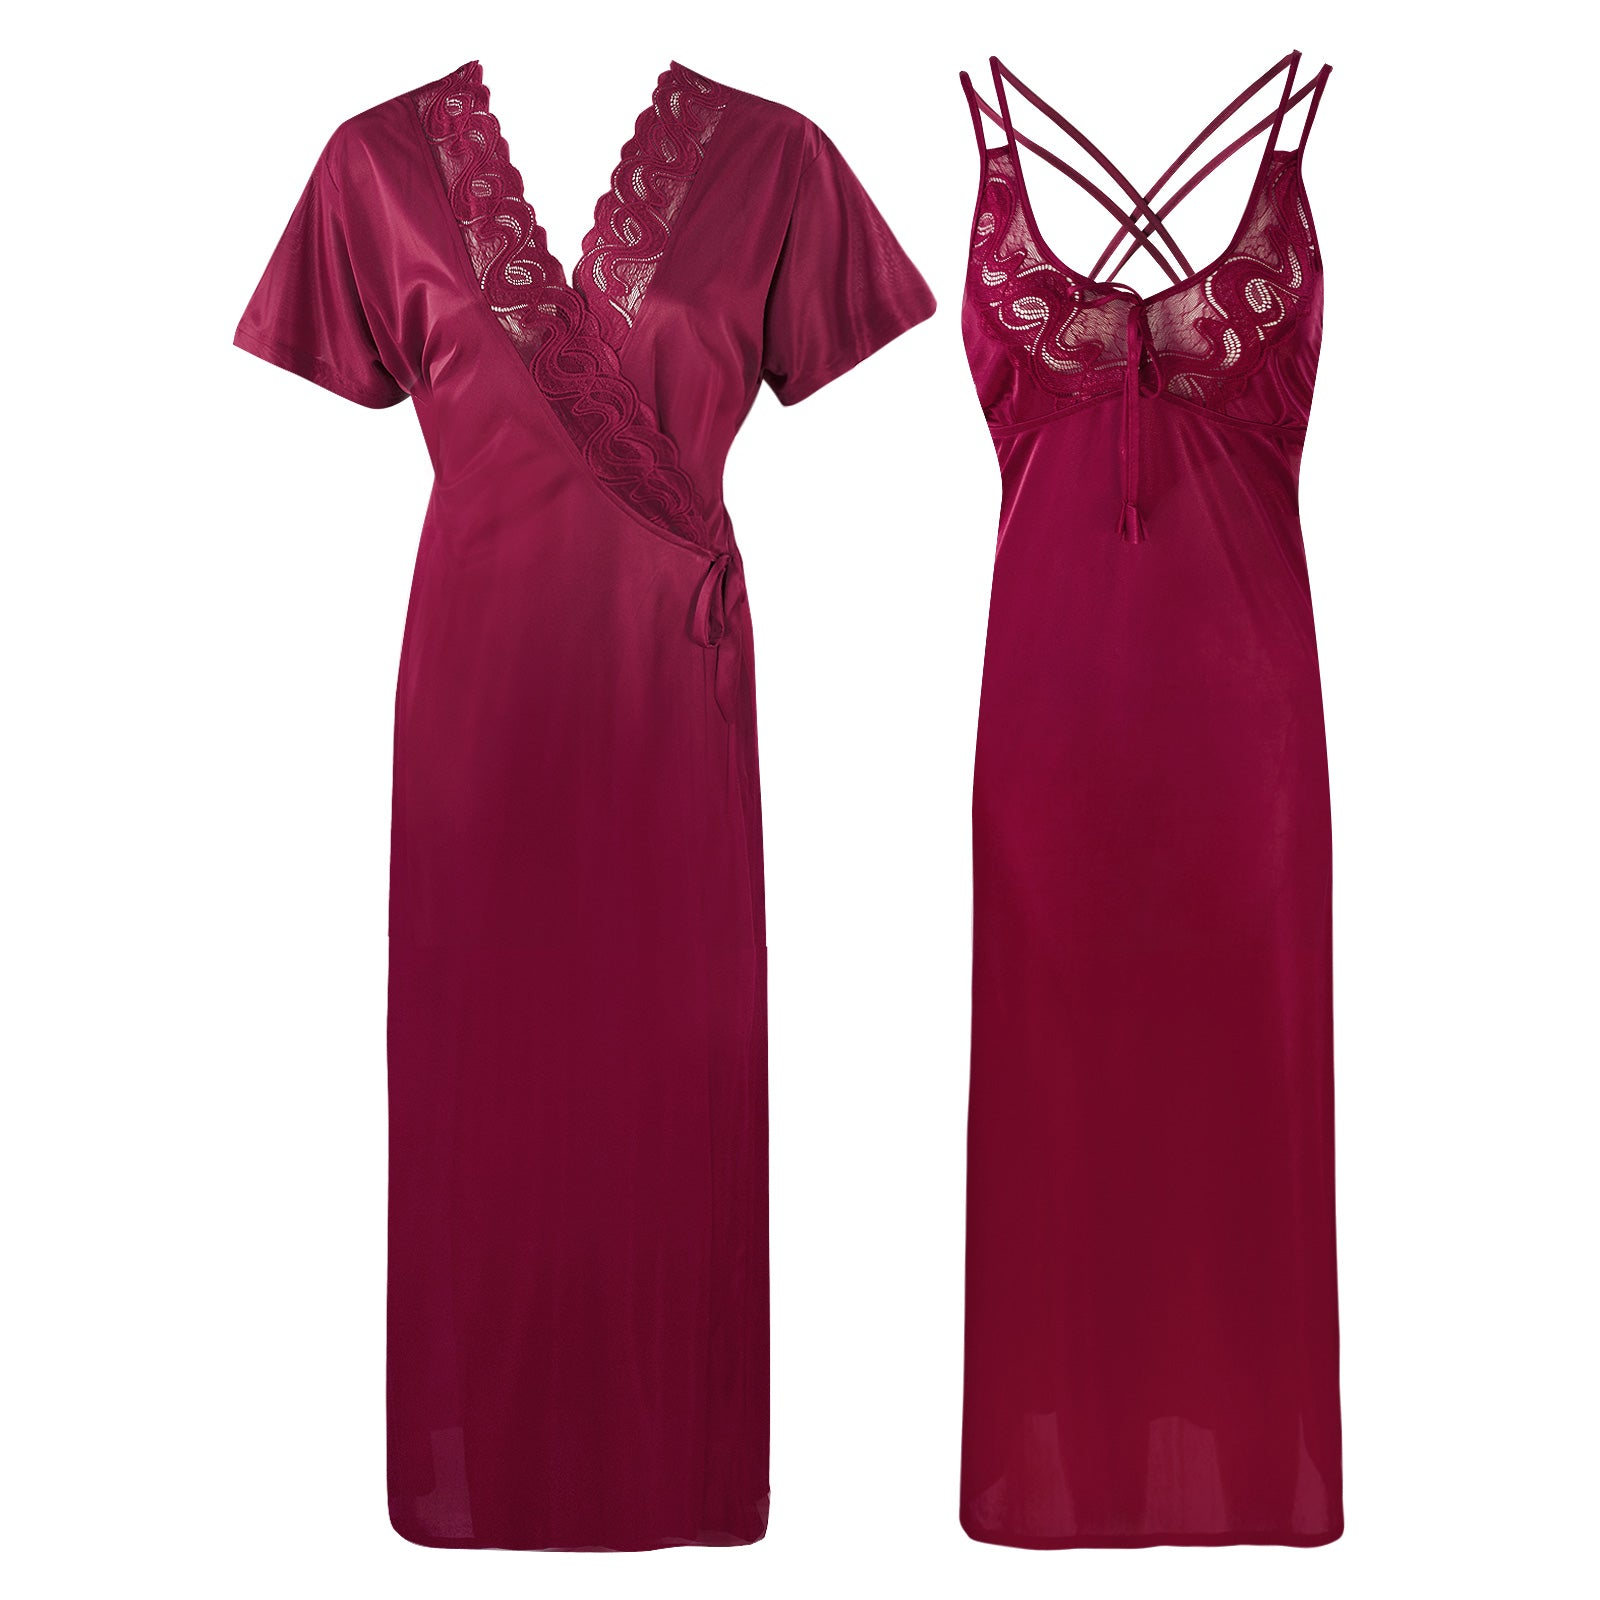 Womens Plus Size Nightdress 2 Pcs Set [colour]- Hautie UK, #Nightfashion | #Underfashion SIZE 16 18 20 DARK WINE